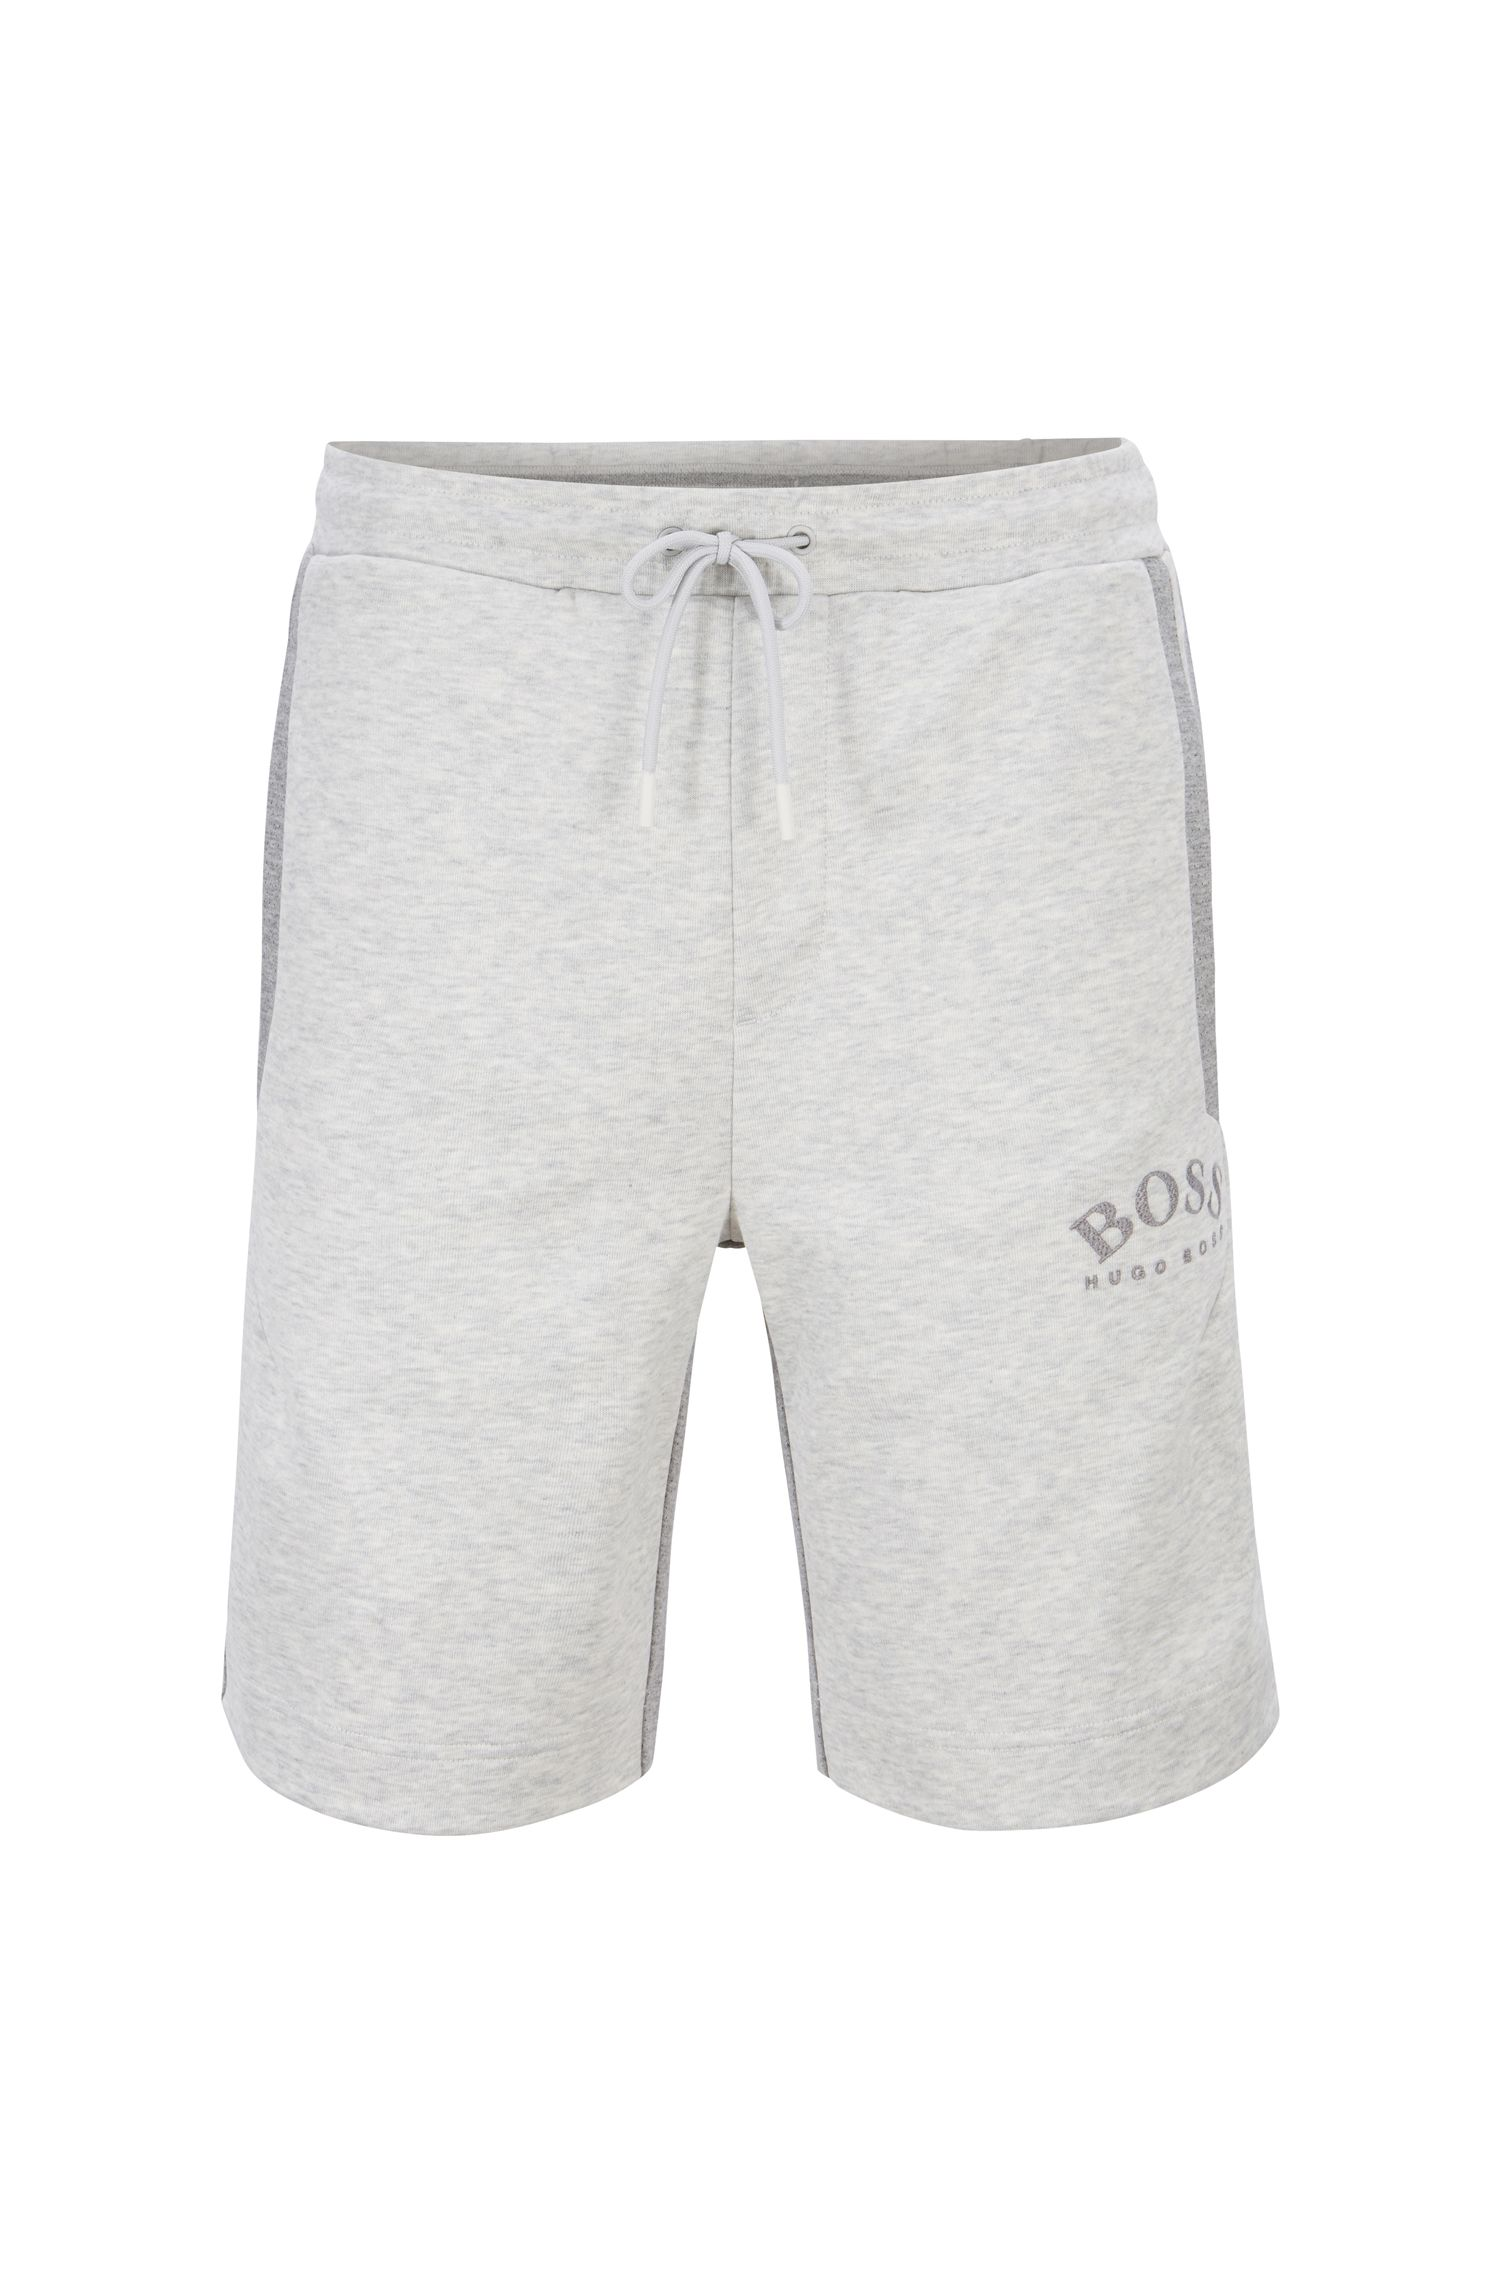 Slim-fit jogging shorts in contrast fabrics with curved logo, Light Grey